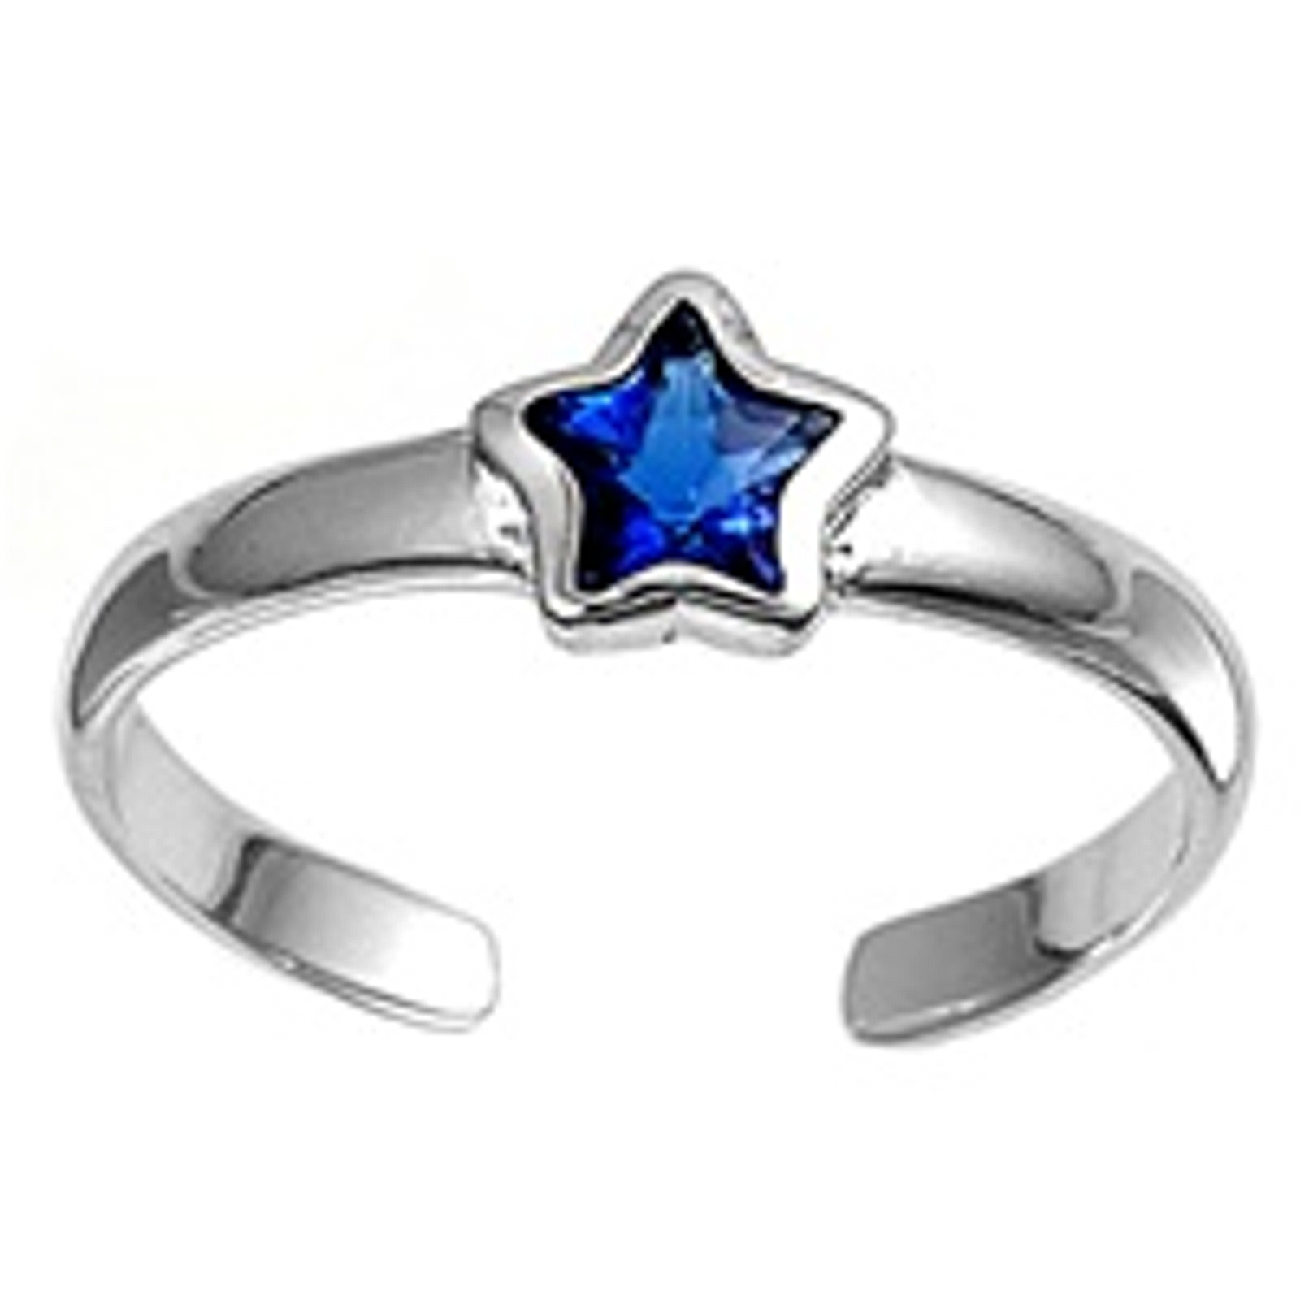 Celestial Blue Cubic Zirconia Star Adjustable Toe Ring